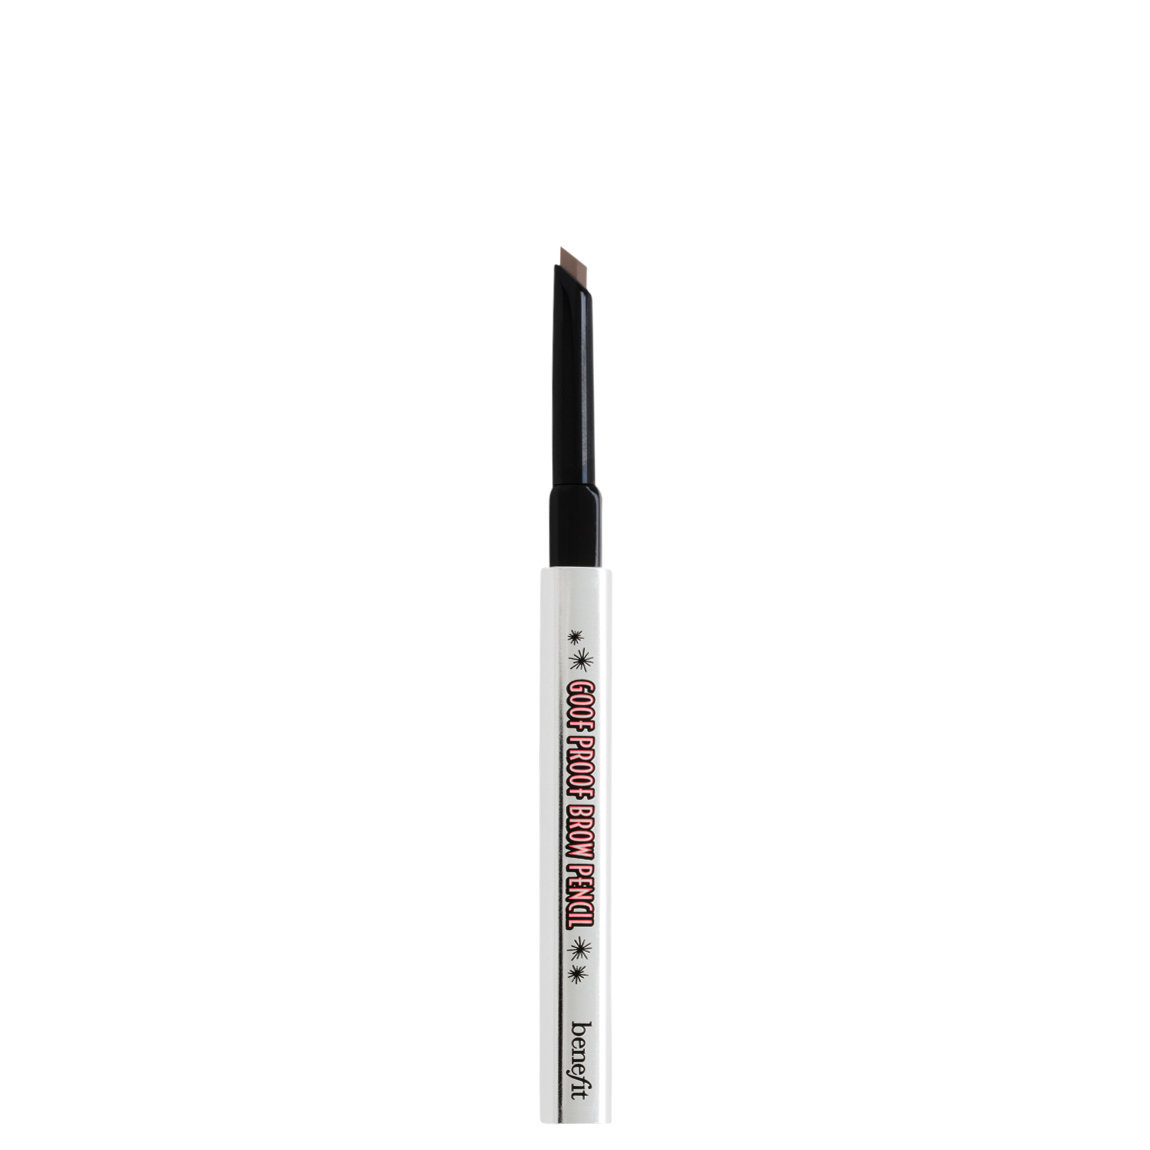 Benefit Cosmetics Goof Proof Brow Pencil Mini 04 Medium